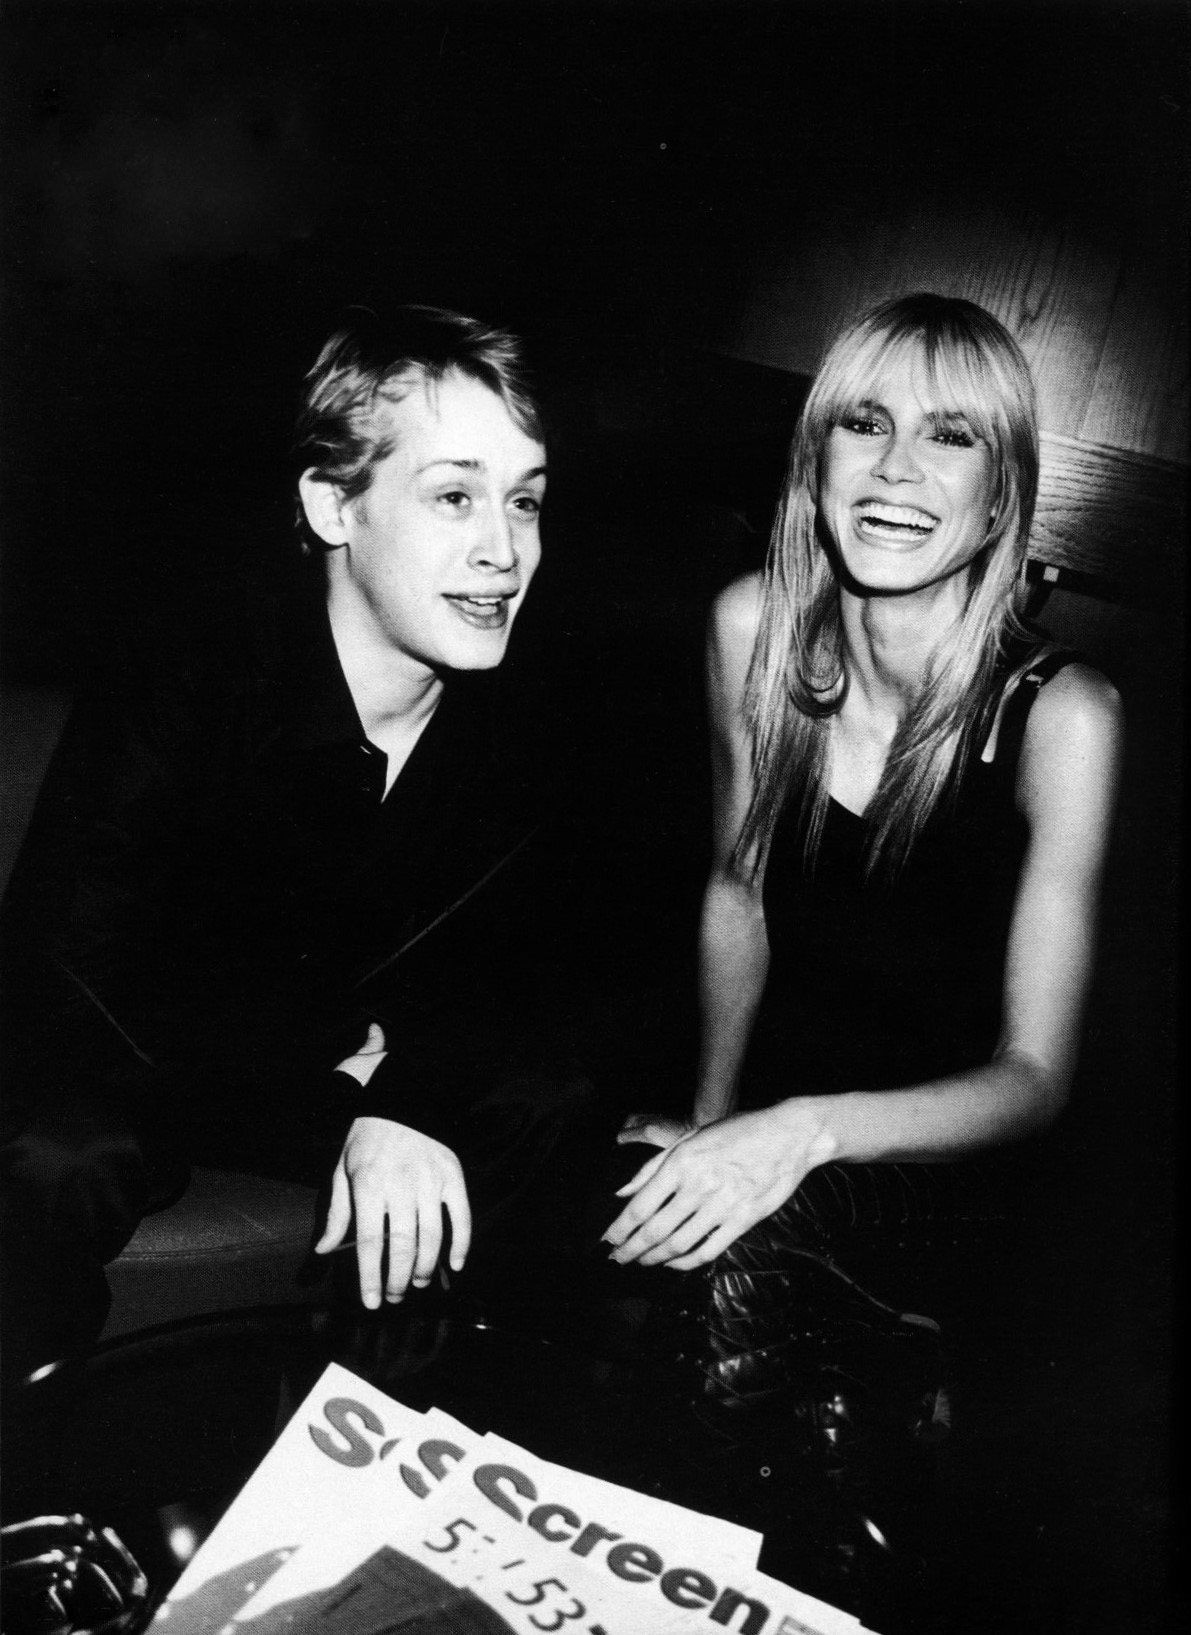 HEIDI KLUM AND MACAULAY CULKIN | PHOTOGRAPHY ROXANNE LOWIT | VOGUE DEUTSCH | APRIL 2003